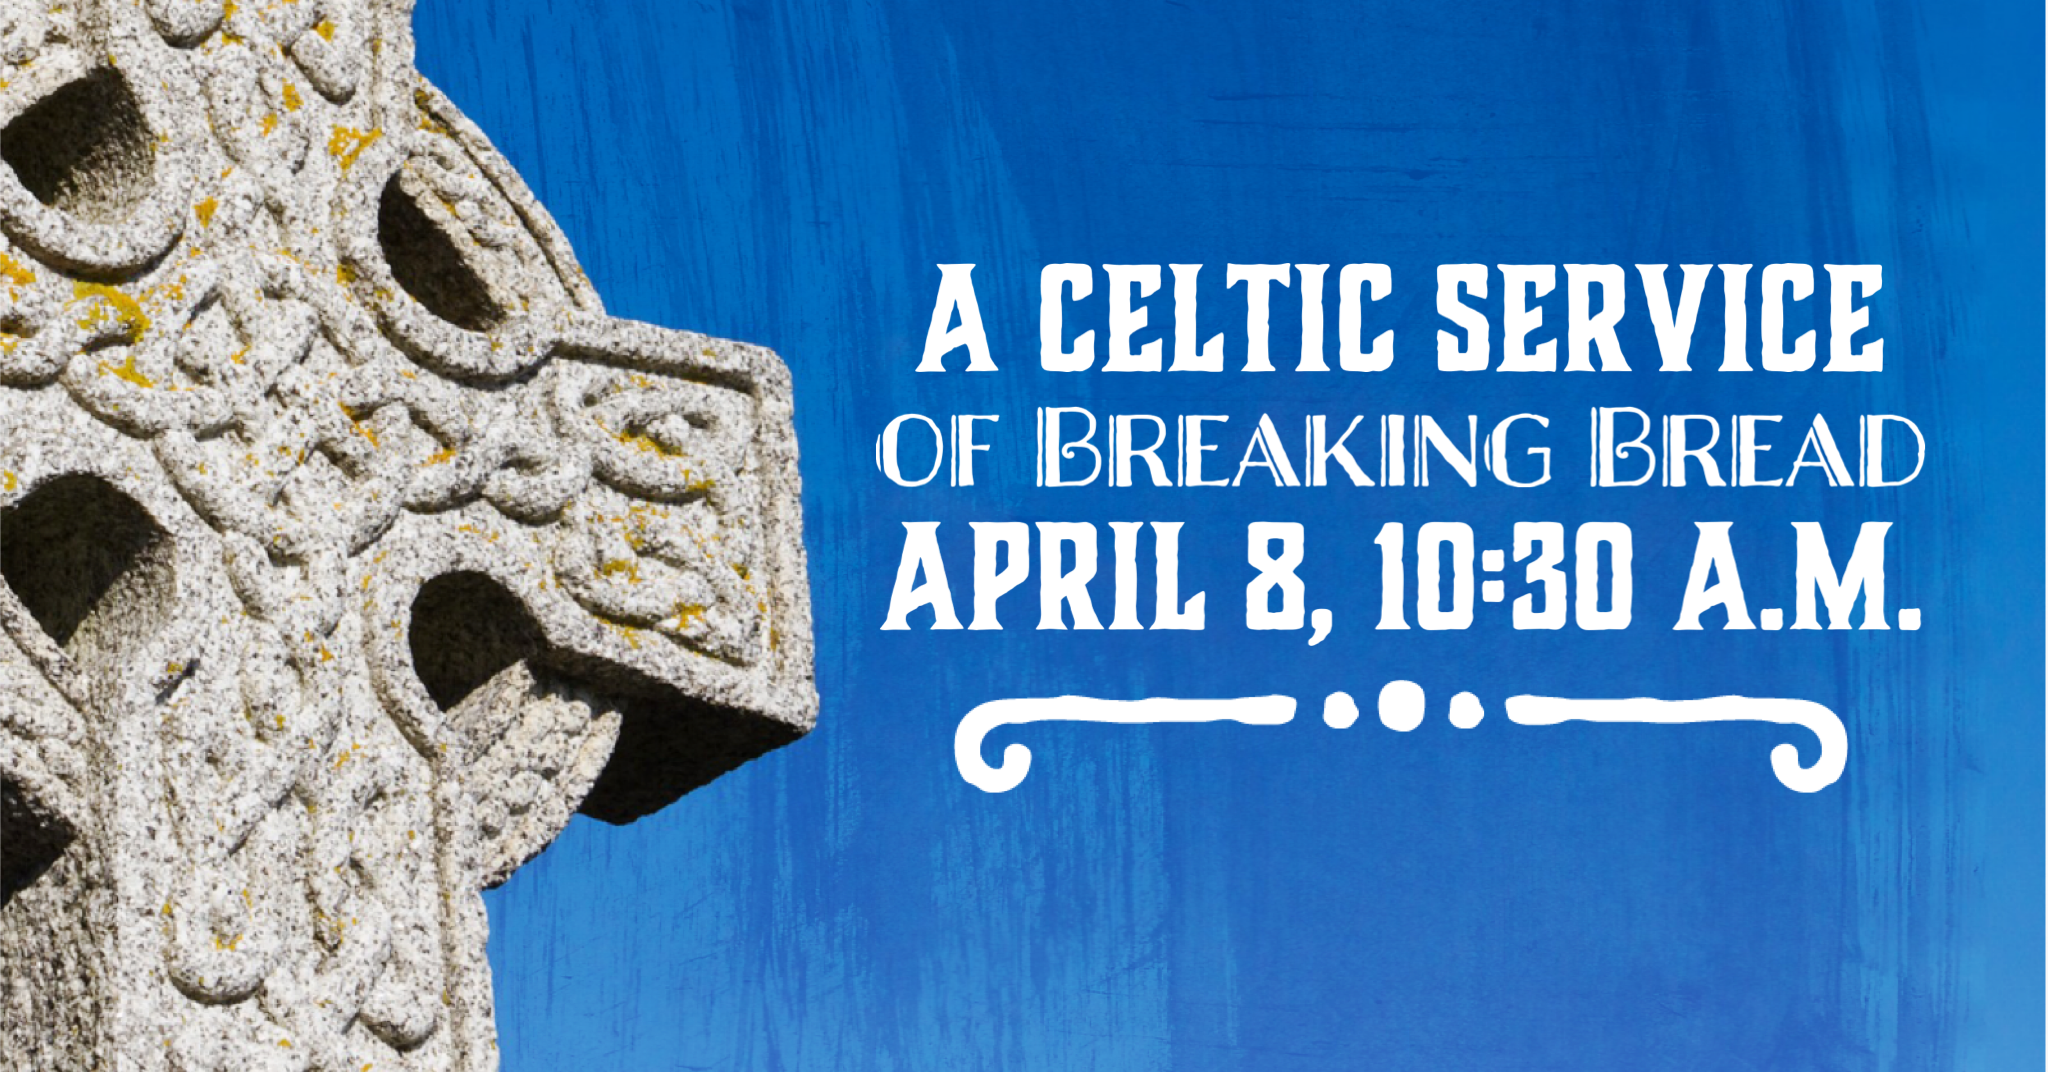 A Celtic Service of Breaking Bread